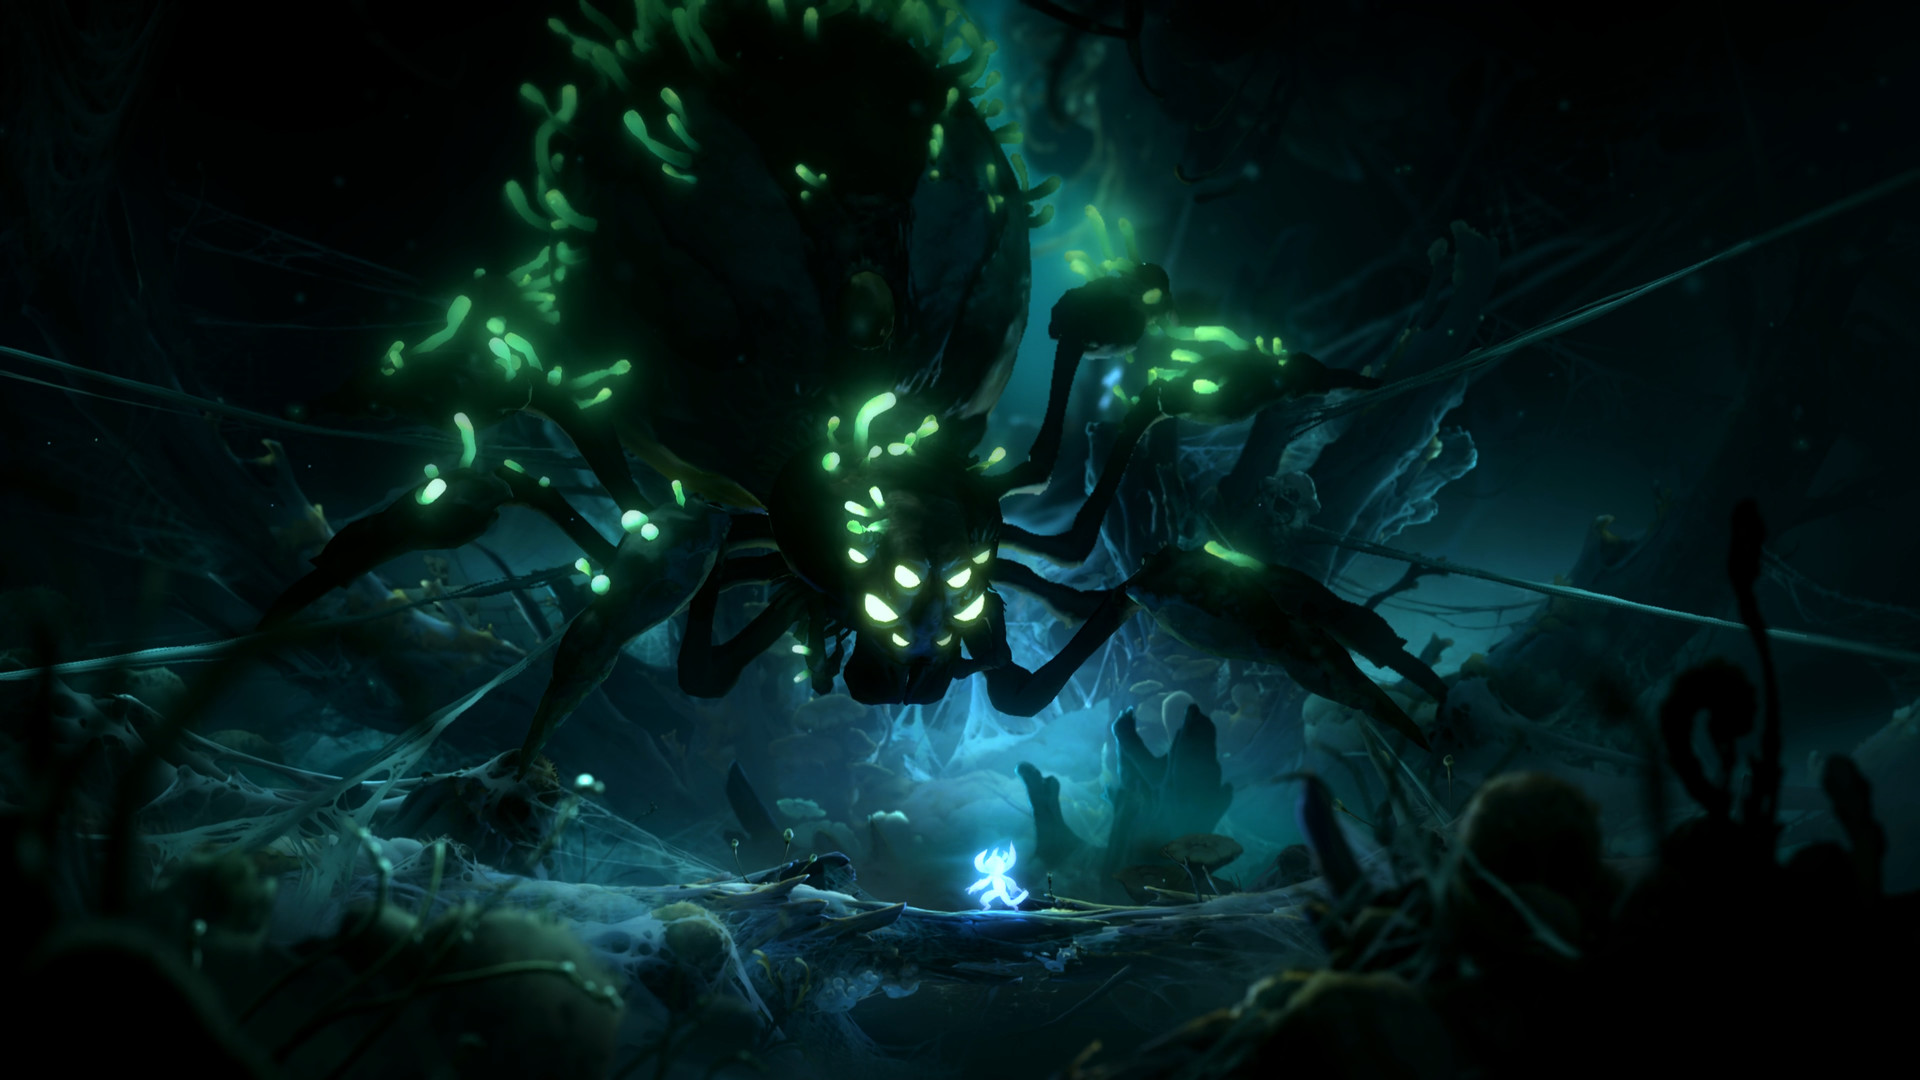 ori-and-the-will-of-the-wisps-pc-screenshot-02